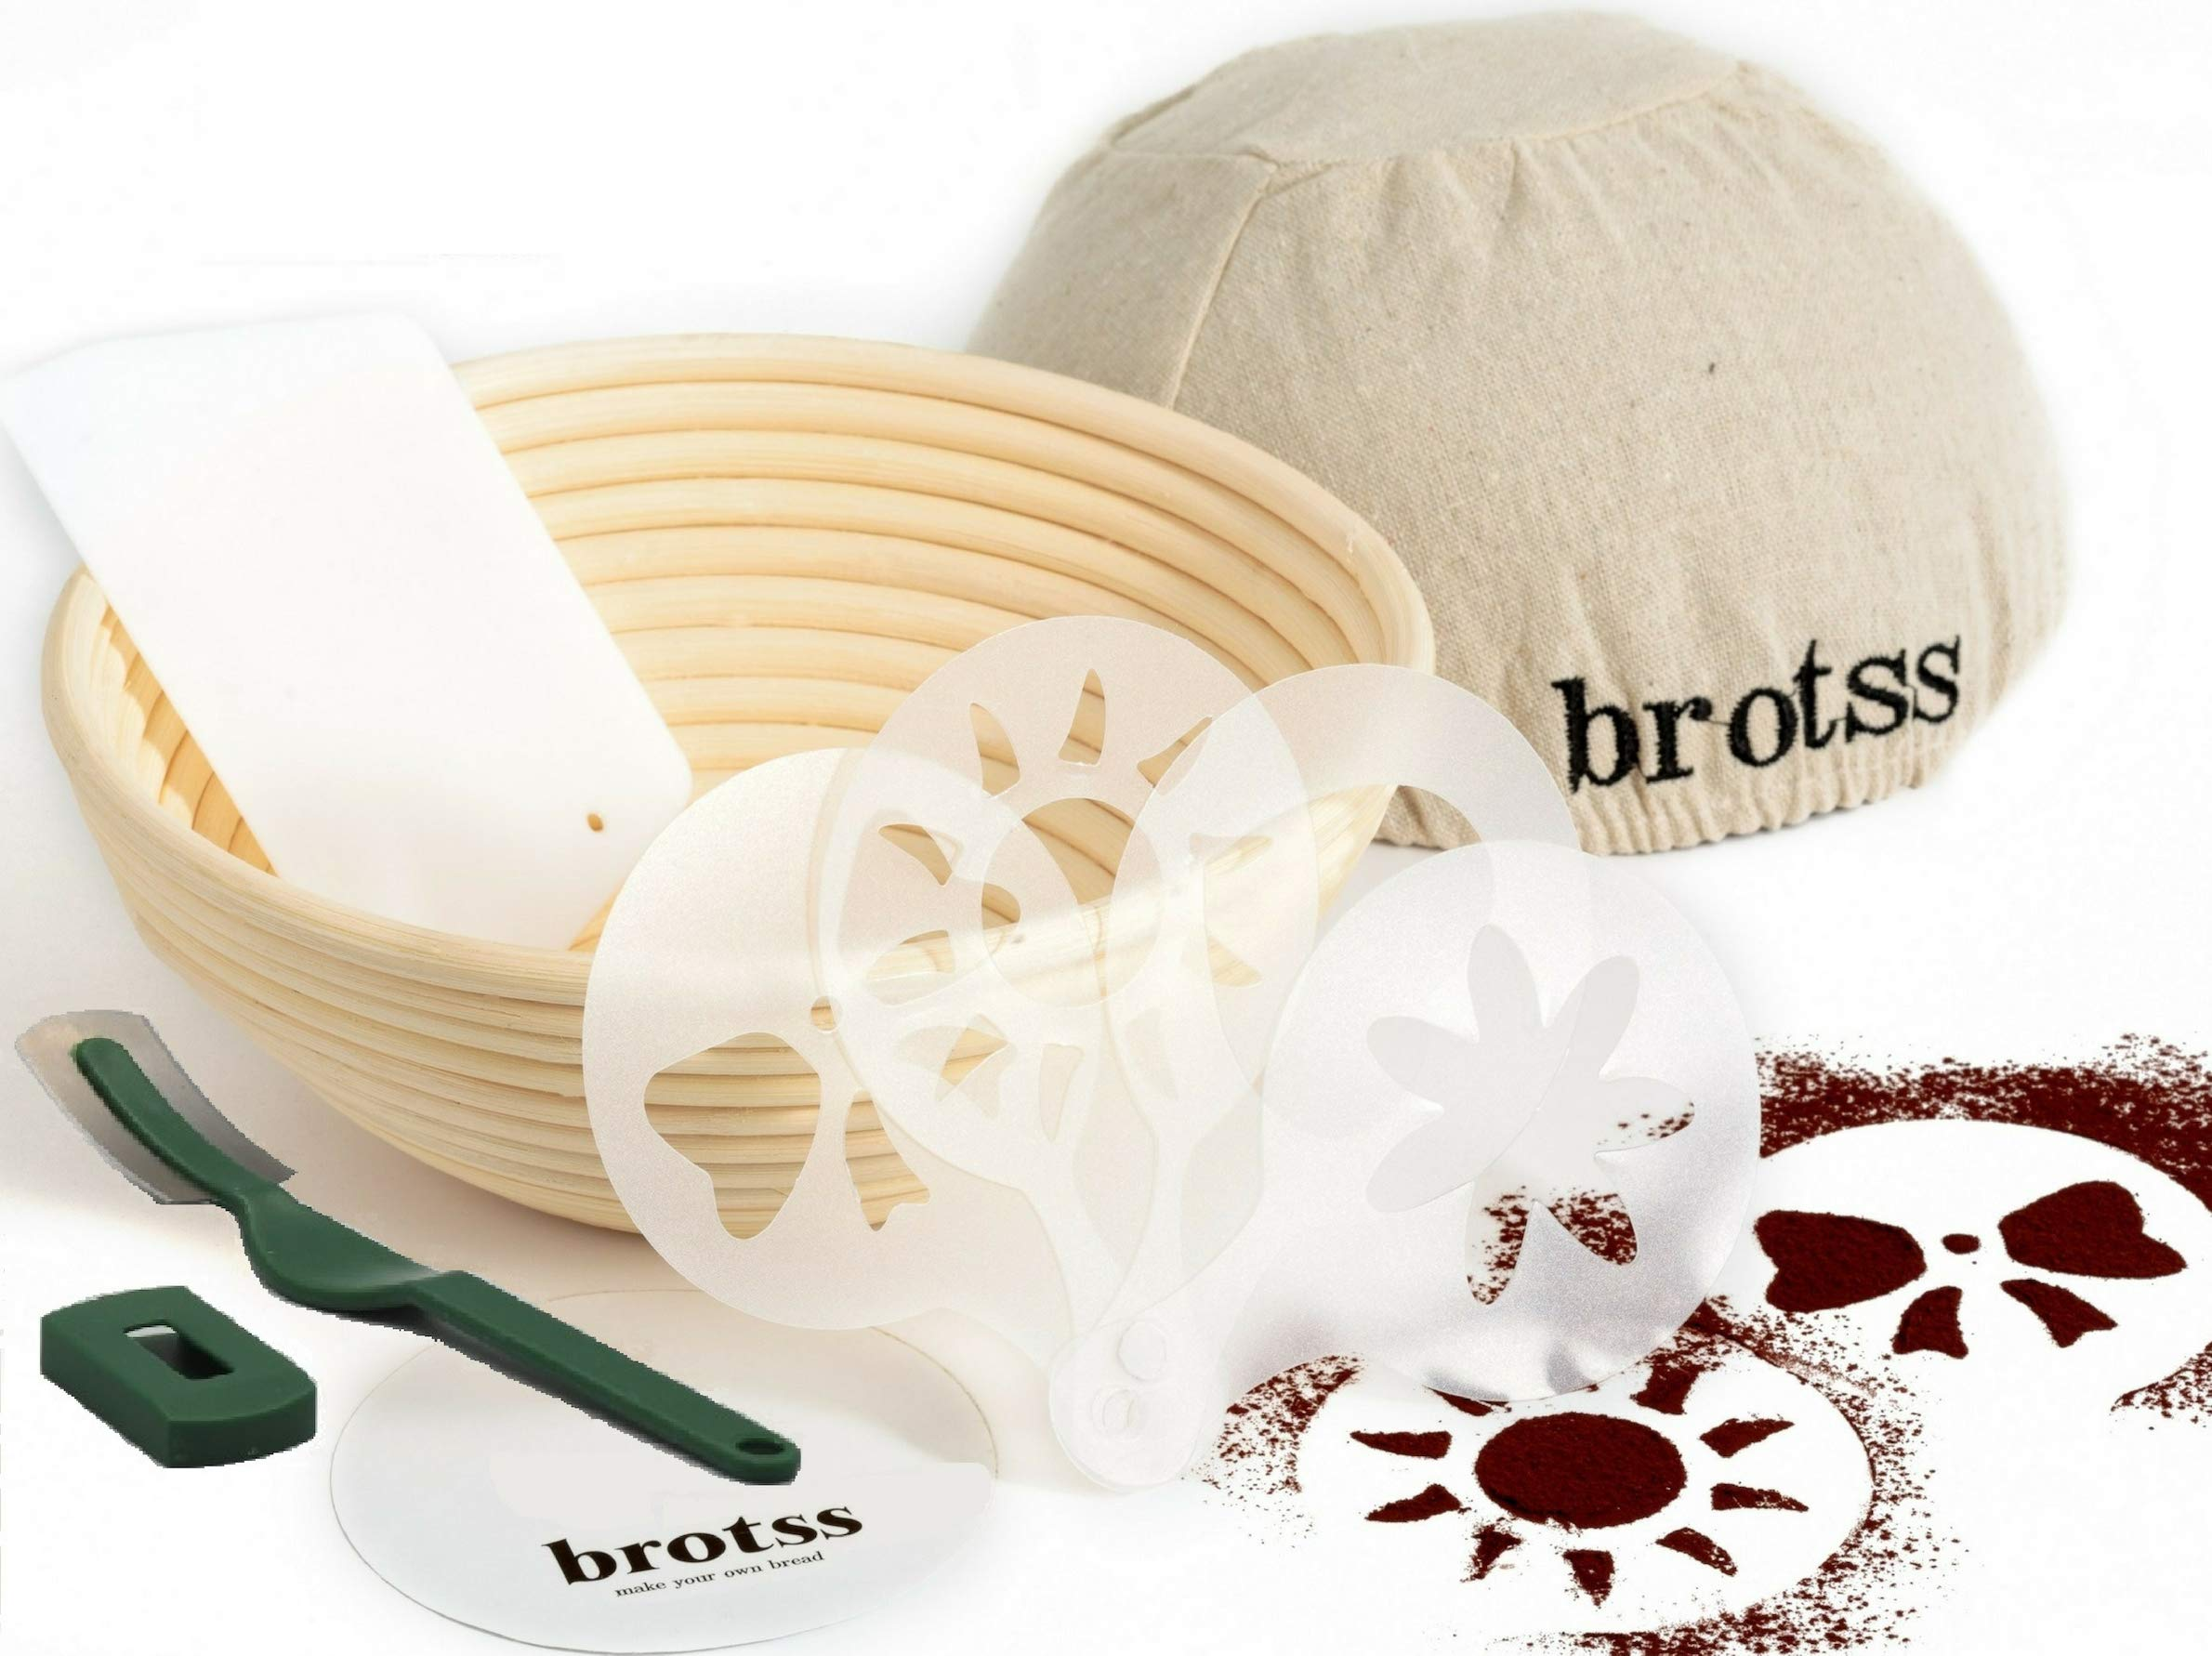 15 items Banneton kit - Proofing Basket +10 Artisan Stencils +Bread Lame +Cloth Liner Linen+Bowl Scraper for Bakers/Sourdough Recipe, Brotform Rising Making Round Baked Crispy Dough Crust Boules Loaf by brotss